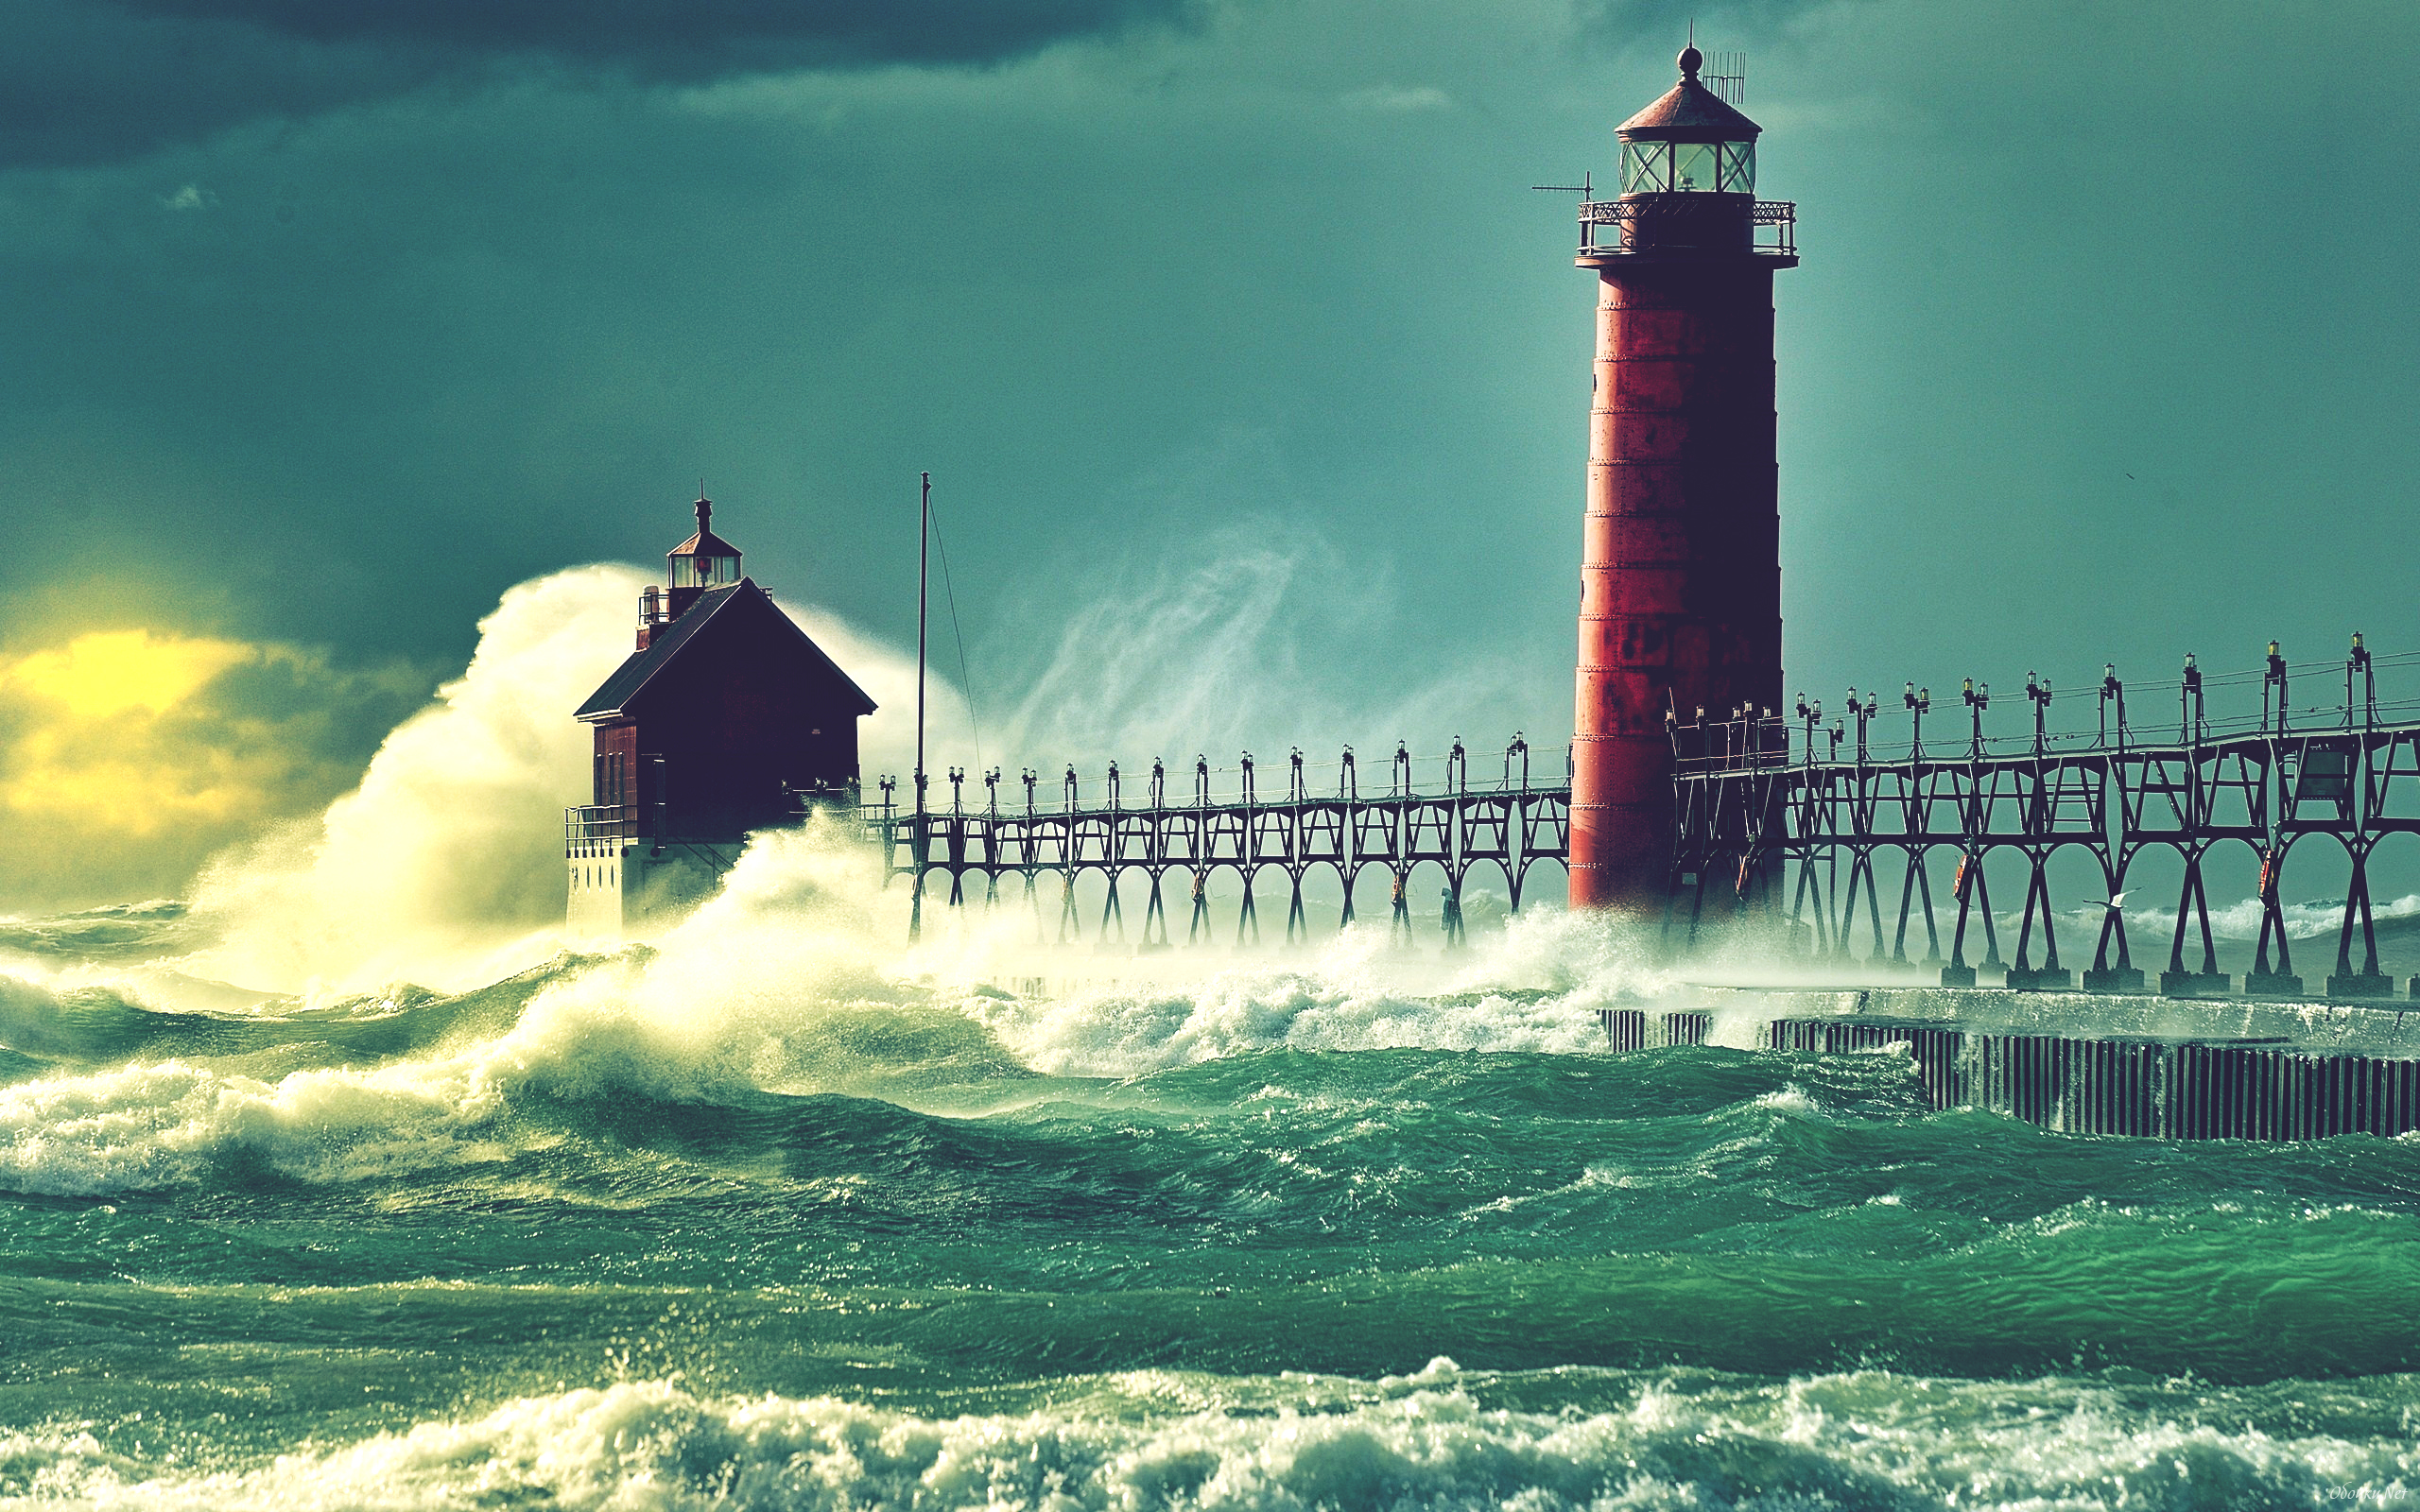 Lighthouse Hd Wallpapers: Lighthouse HD Wallpaper